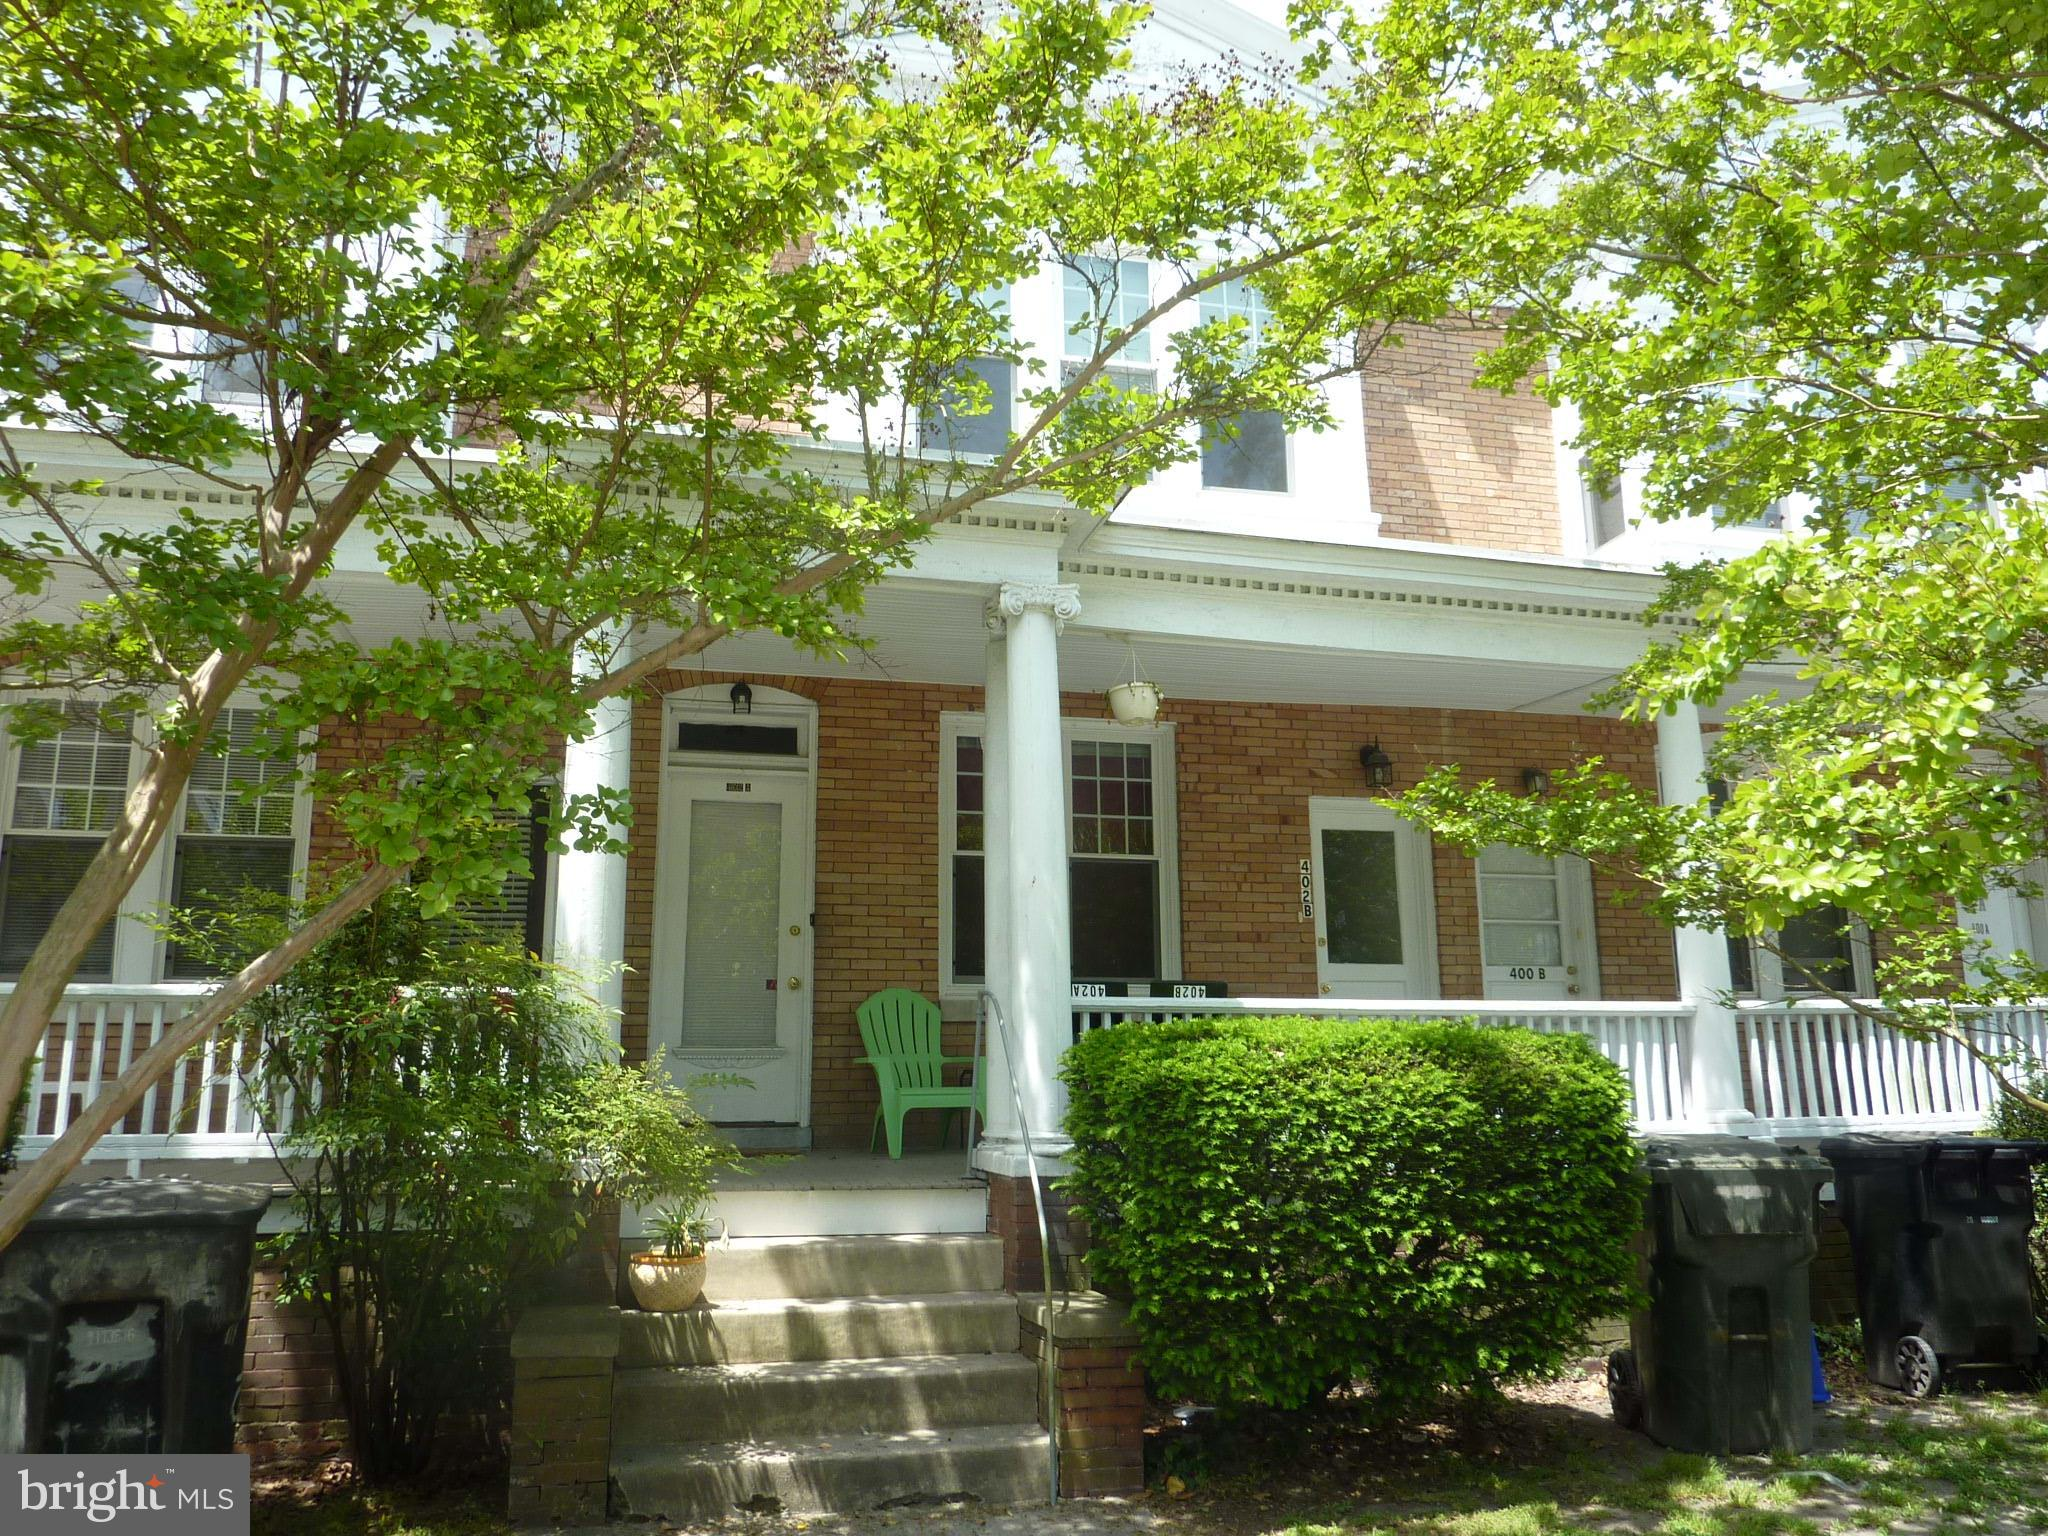 Second floor apartment located on the one-way section at the beginning of Camden Avenue, near downtown Salisbury. The apartment has a living room, kitchen, bathroom, large bedroom, and enclosed rear porch. Appliances include refrigerator, electric stove, and washer/dryer. Features include private front and rear entries, vinyl windows, city service, and gas heat but NO gas bill. Tenant is responsible for electric. Landlord provides natural gas heat and water/sewer/trash services. Available now.